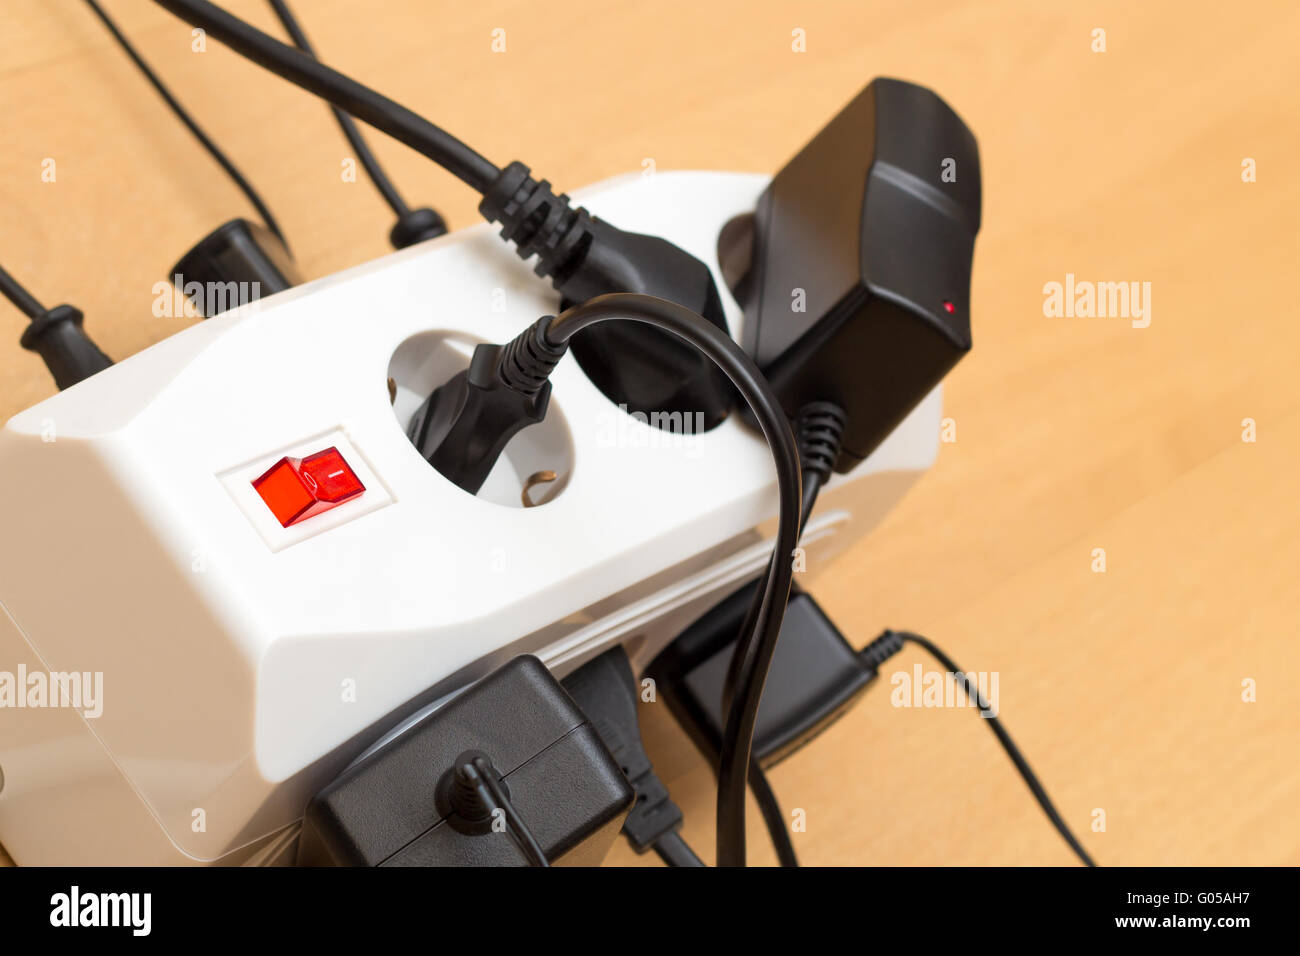 Many plugs in a power strip - Stock Image